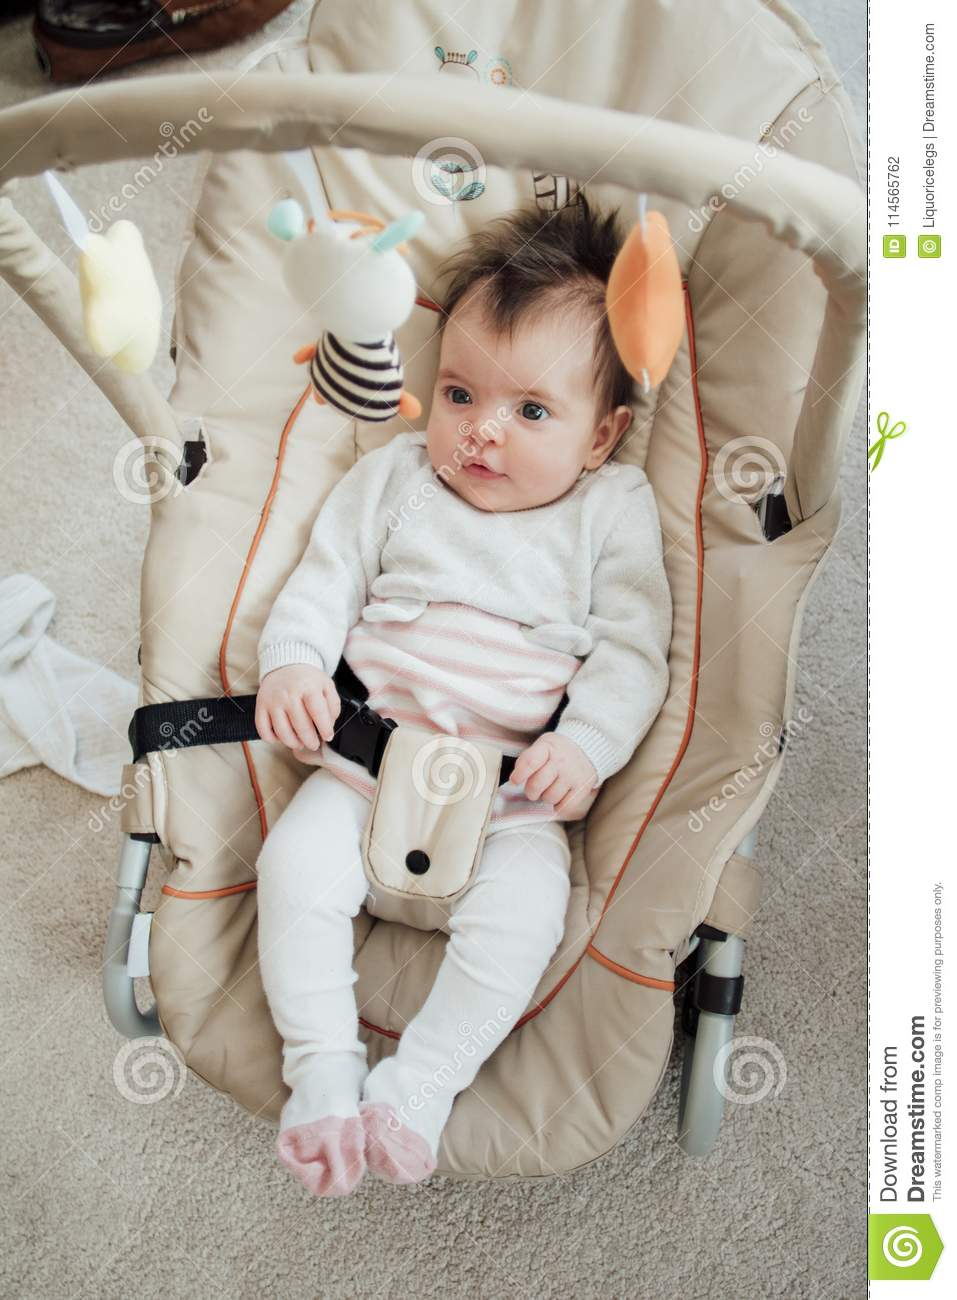 d86995c29 Happy Baby Relaxing In A Bouncer Chair Stock Photo - Image of ...